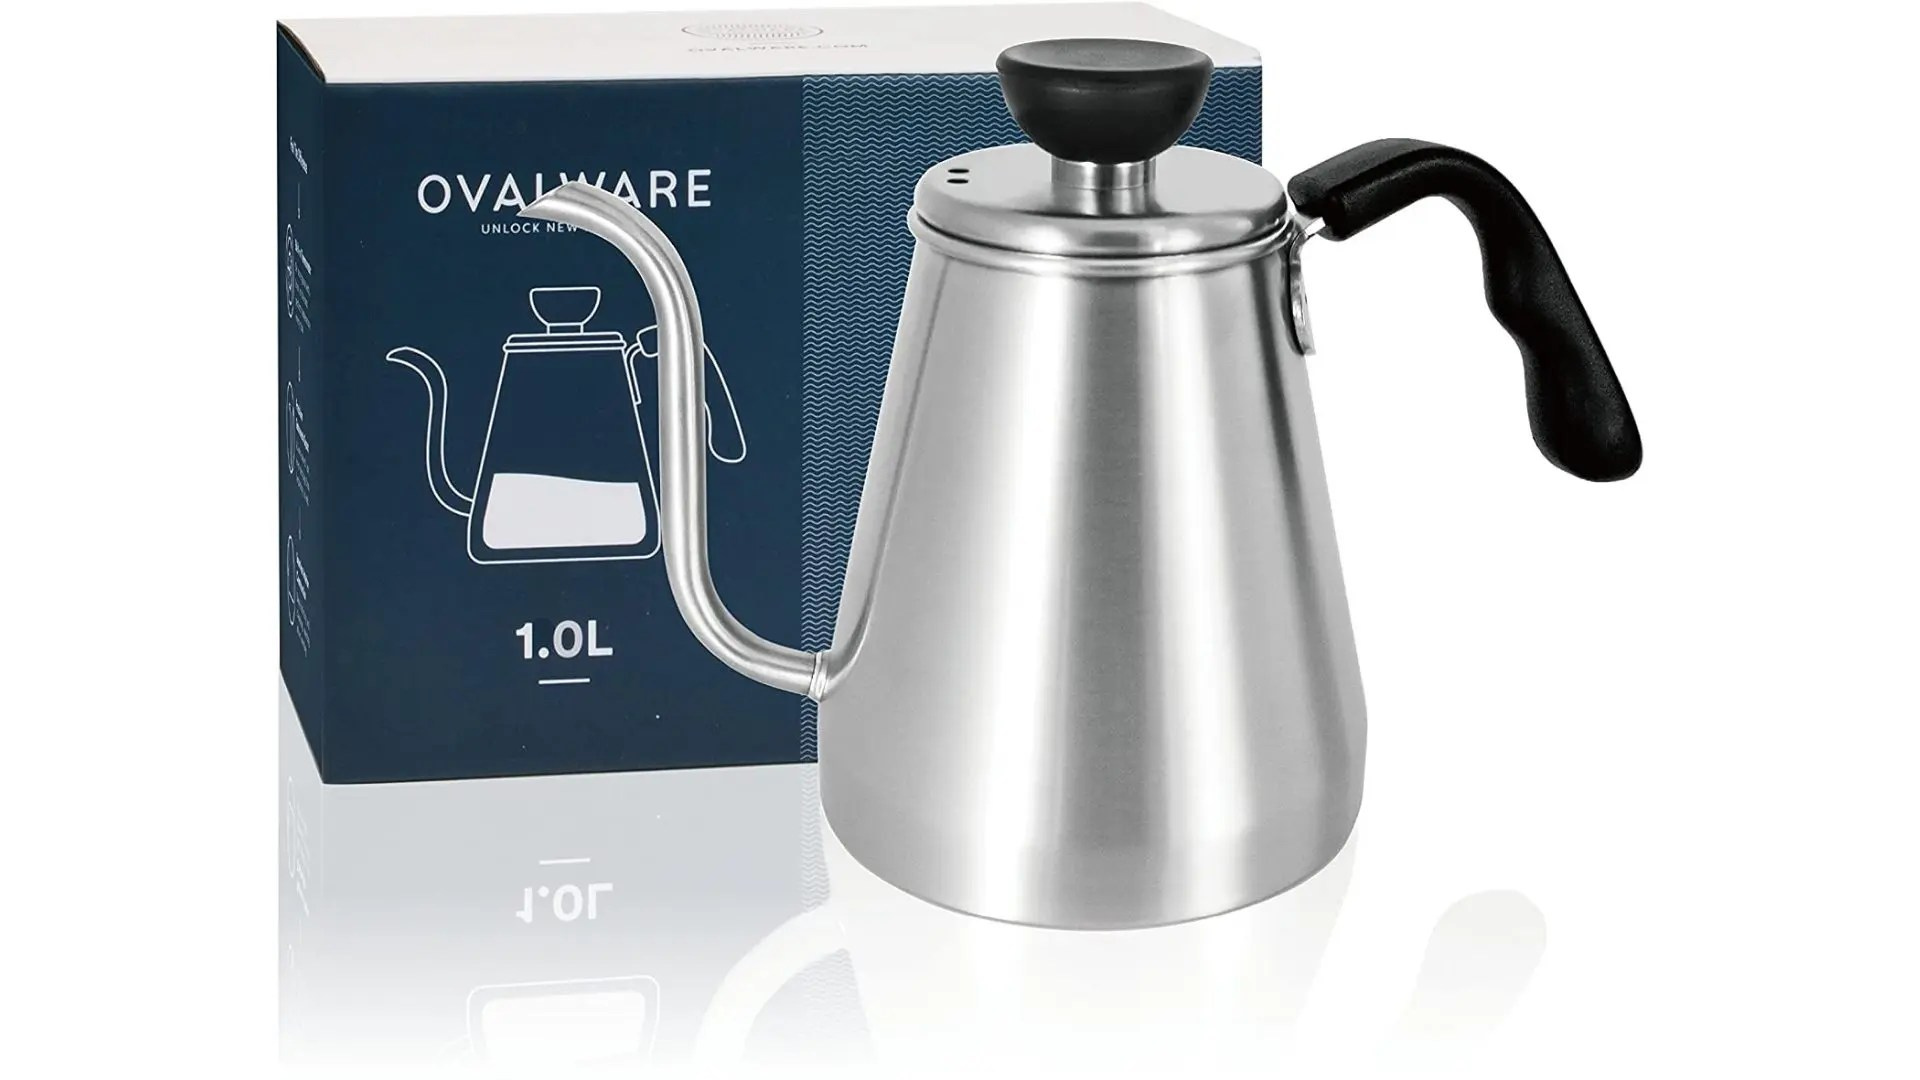 Ovalware RJ3 Stainless Steel Drip Kettle With Precision Gooseneck Spout